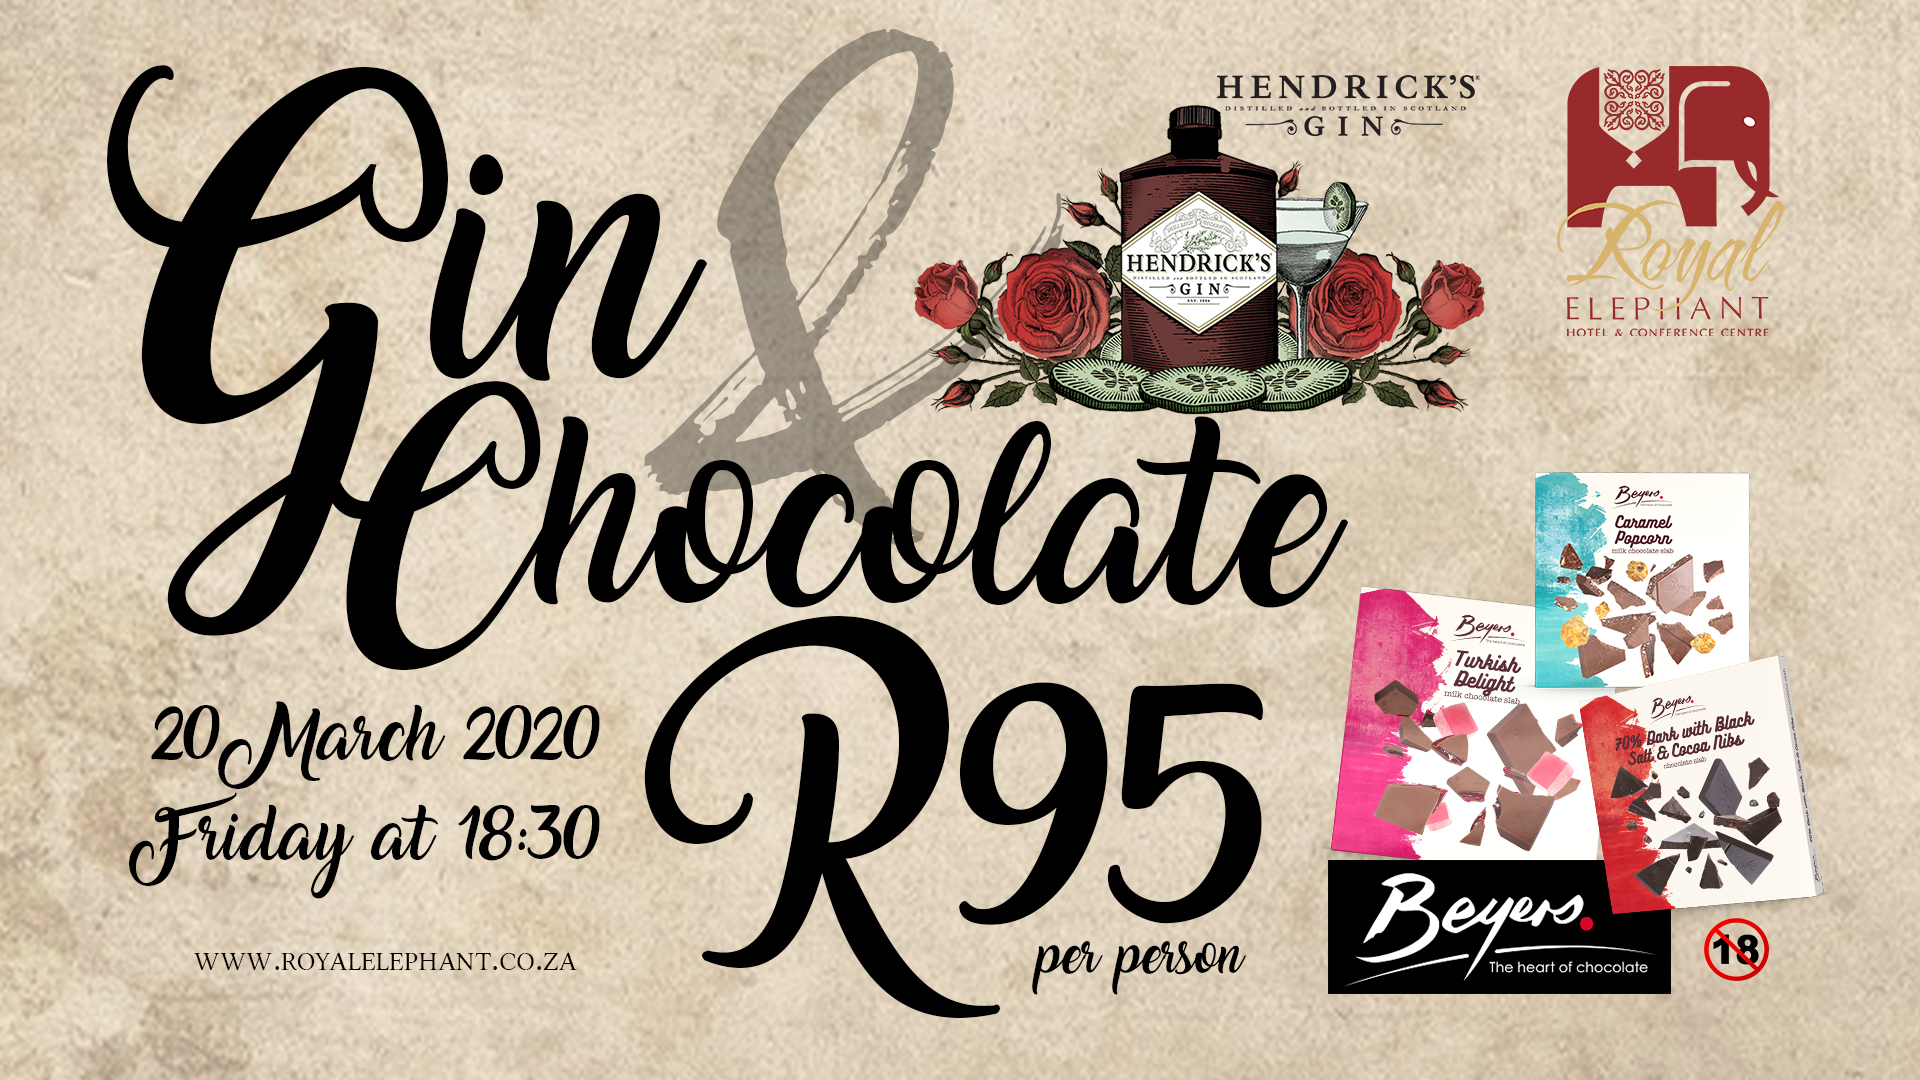 Gin & Chocolate Tasting – 20 March 2020